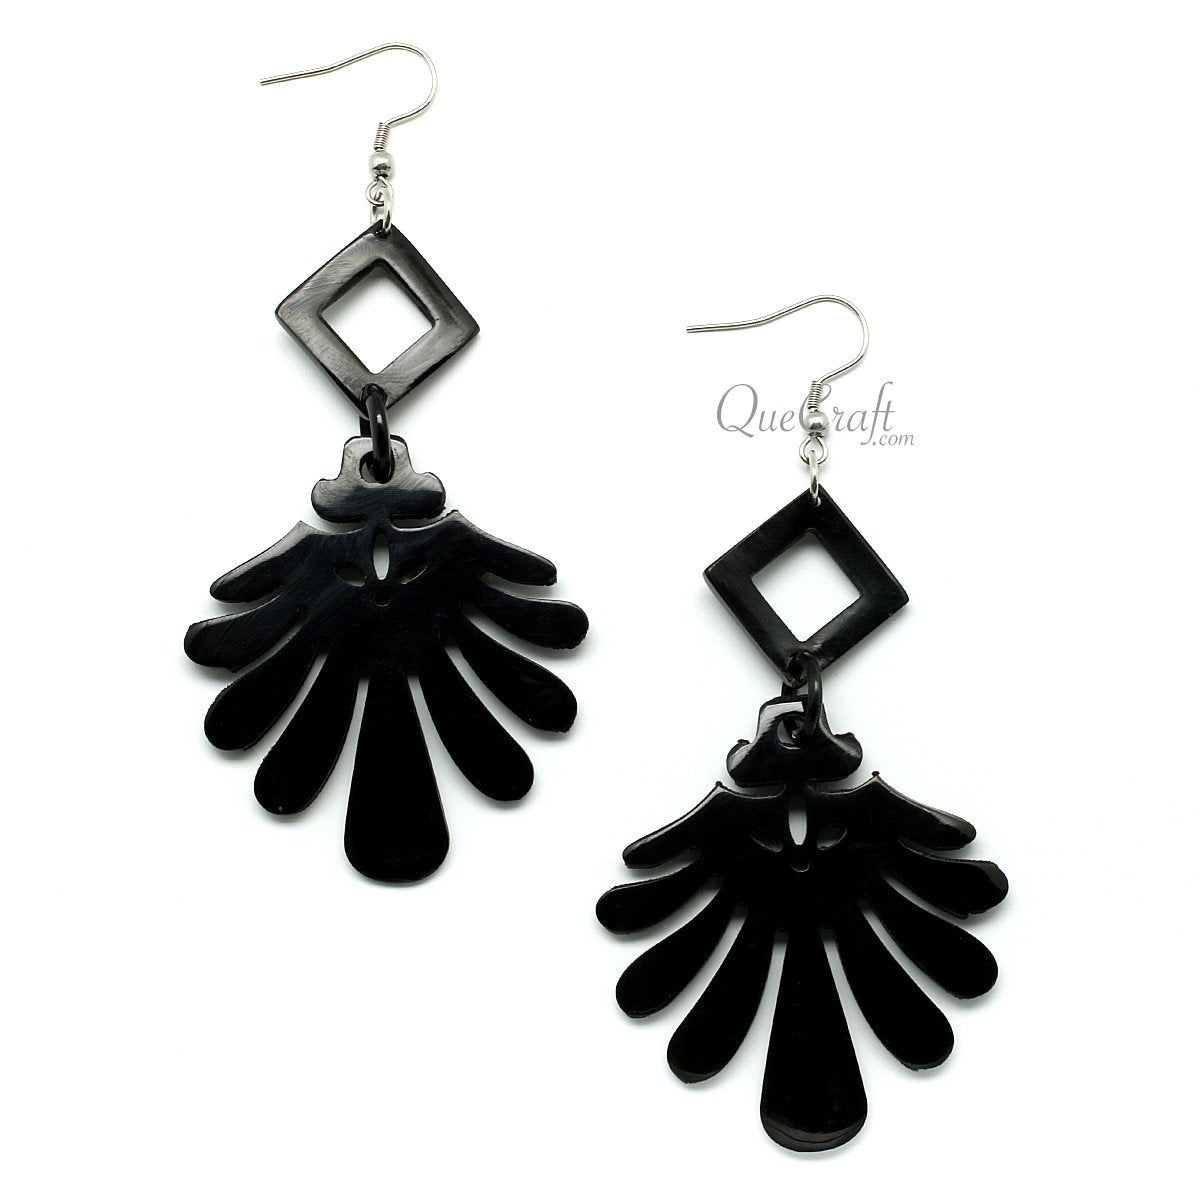 Horn Earrings #10433 - HORN.JEWELRY by QueCraft